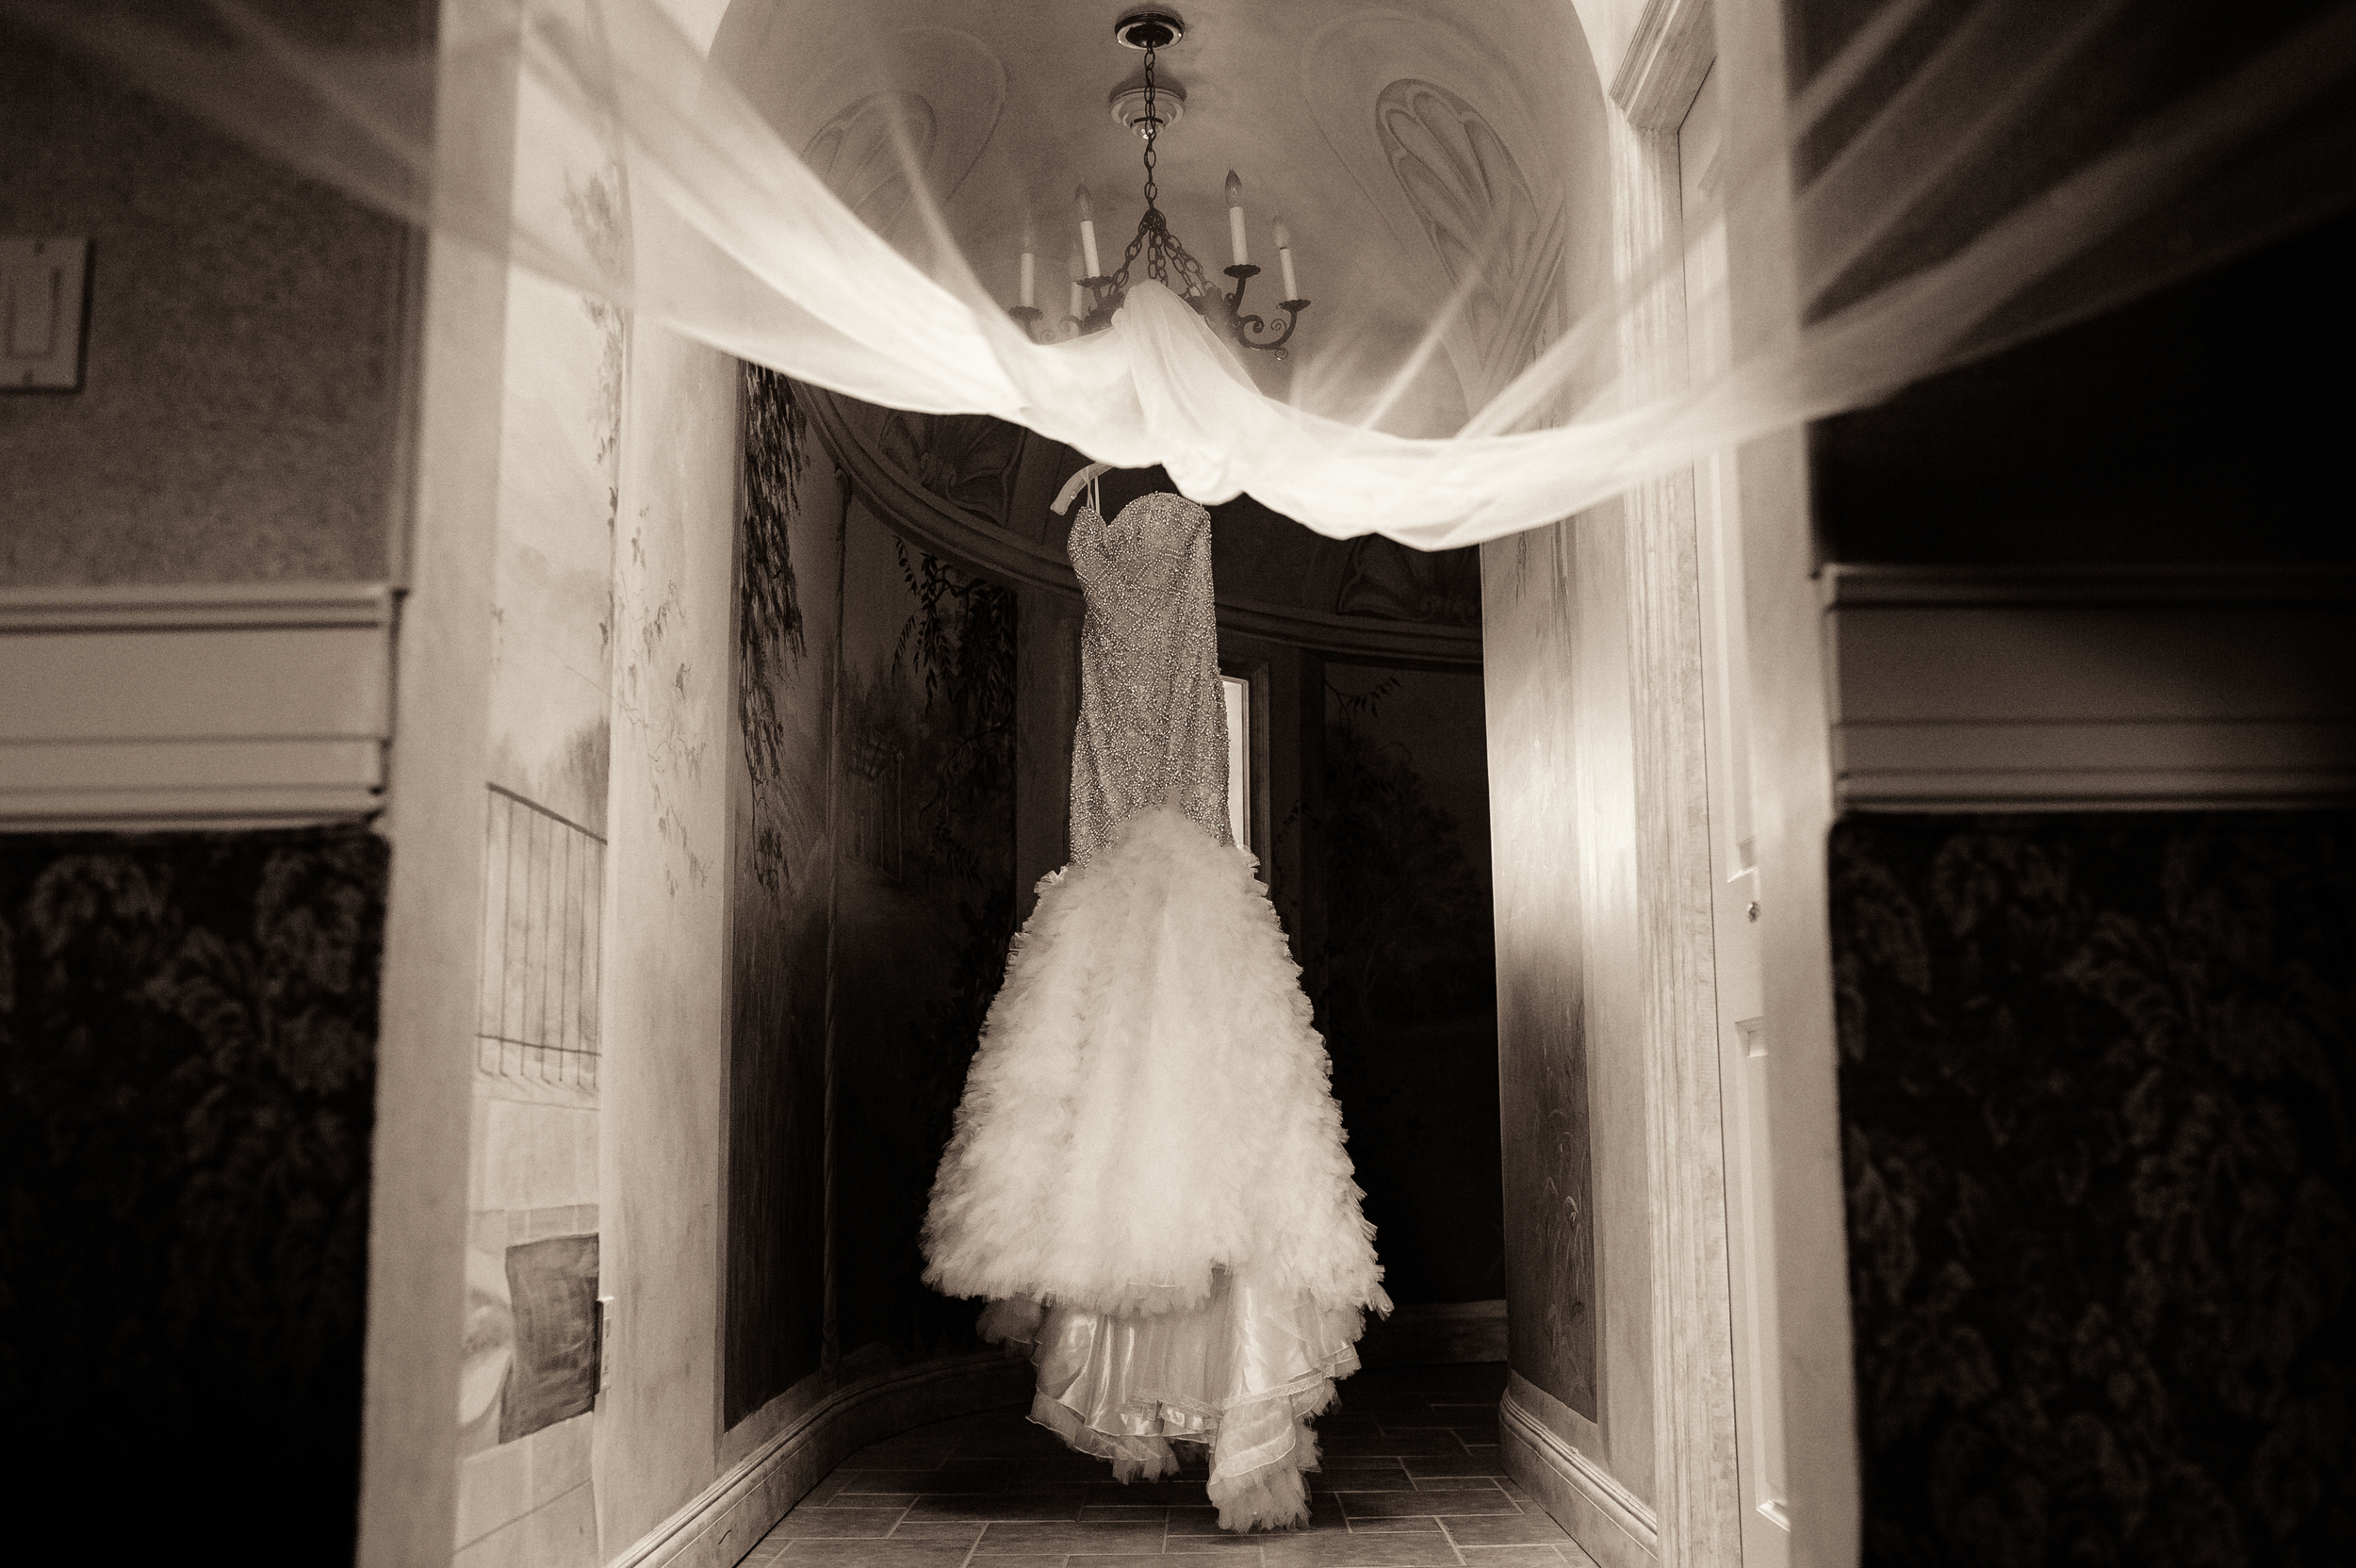 meanwhile, up in the Bridal Suite, a beautiful gown hung, patiently waiting for the bride to put on the dress of a lifetime.